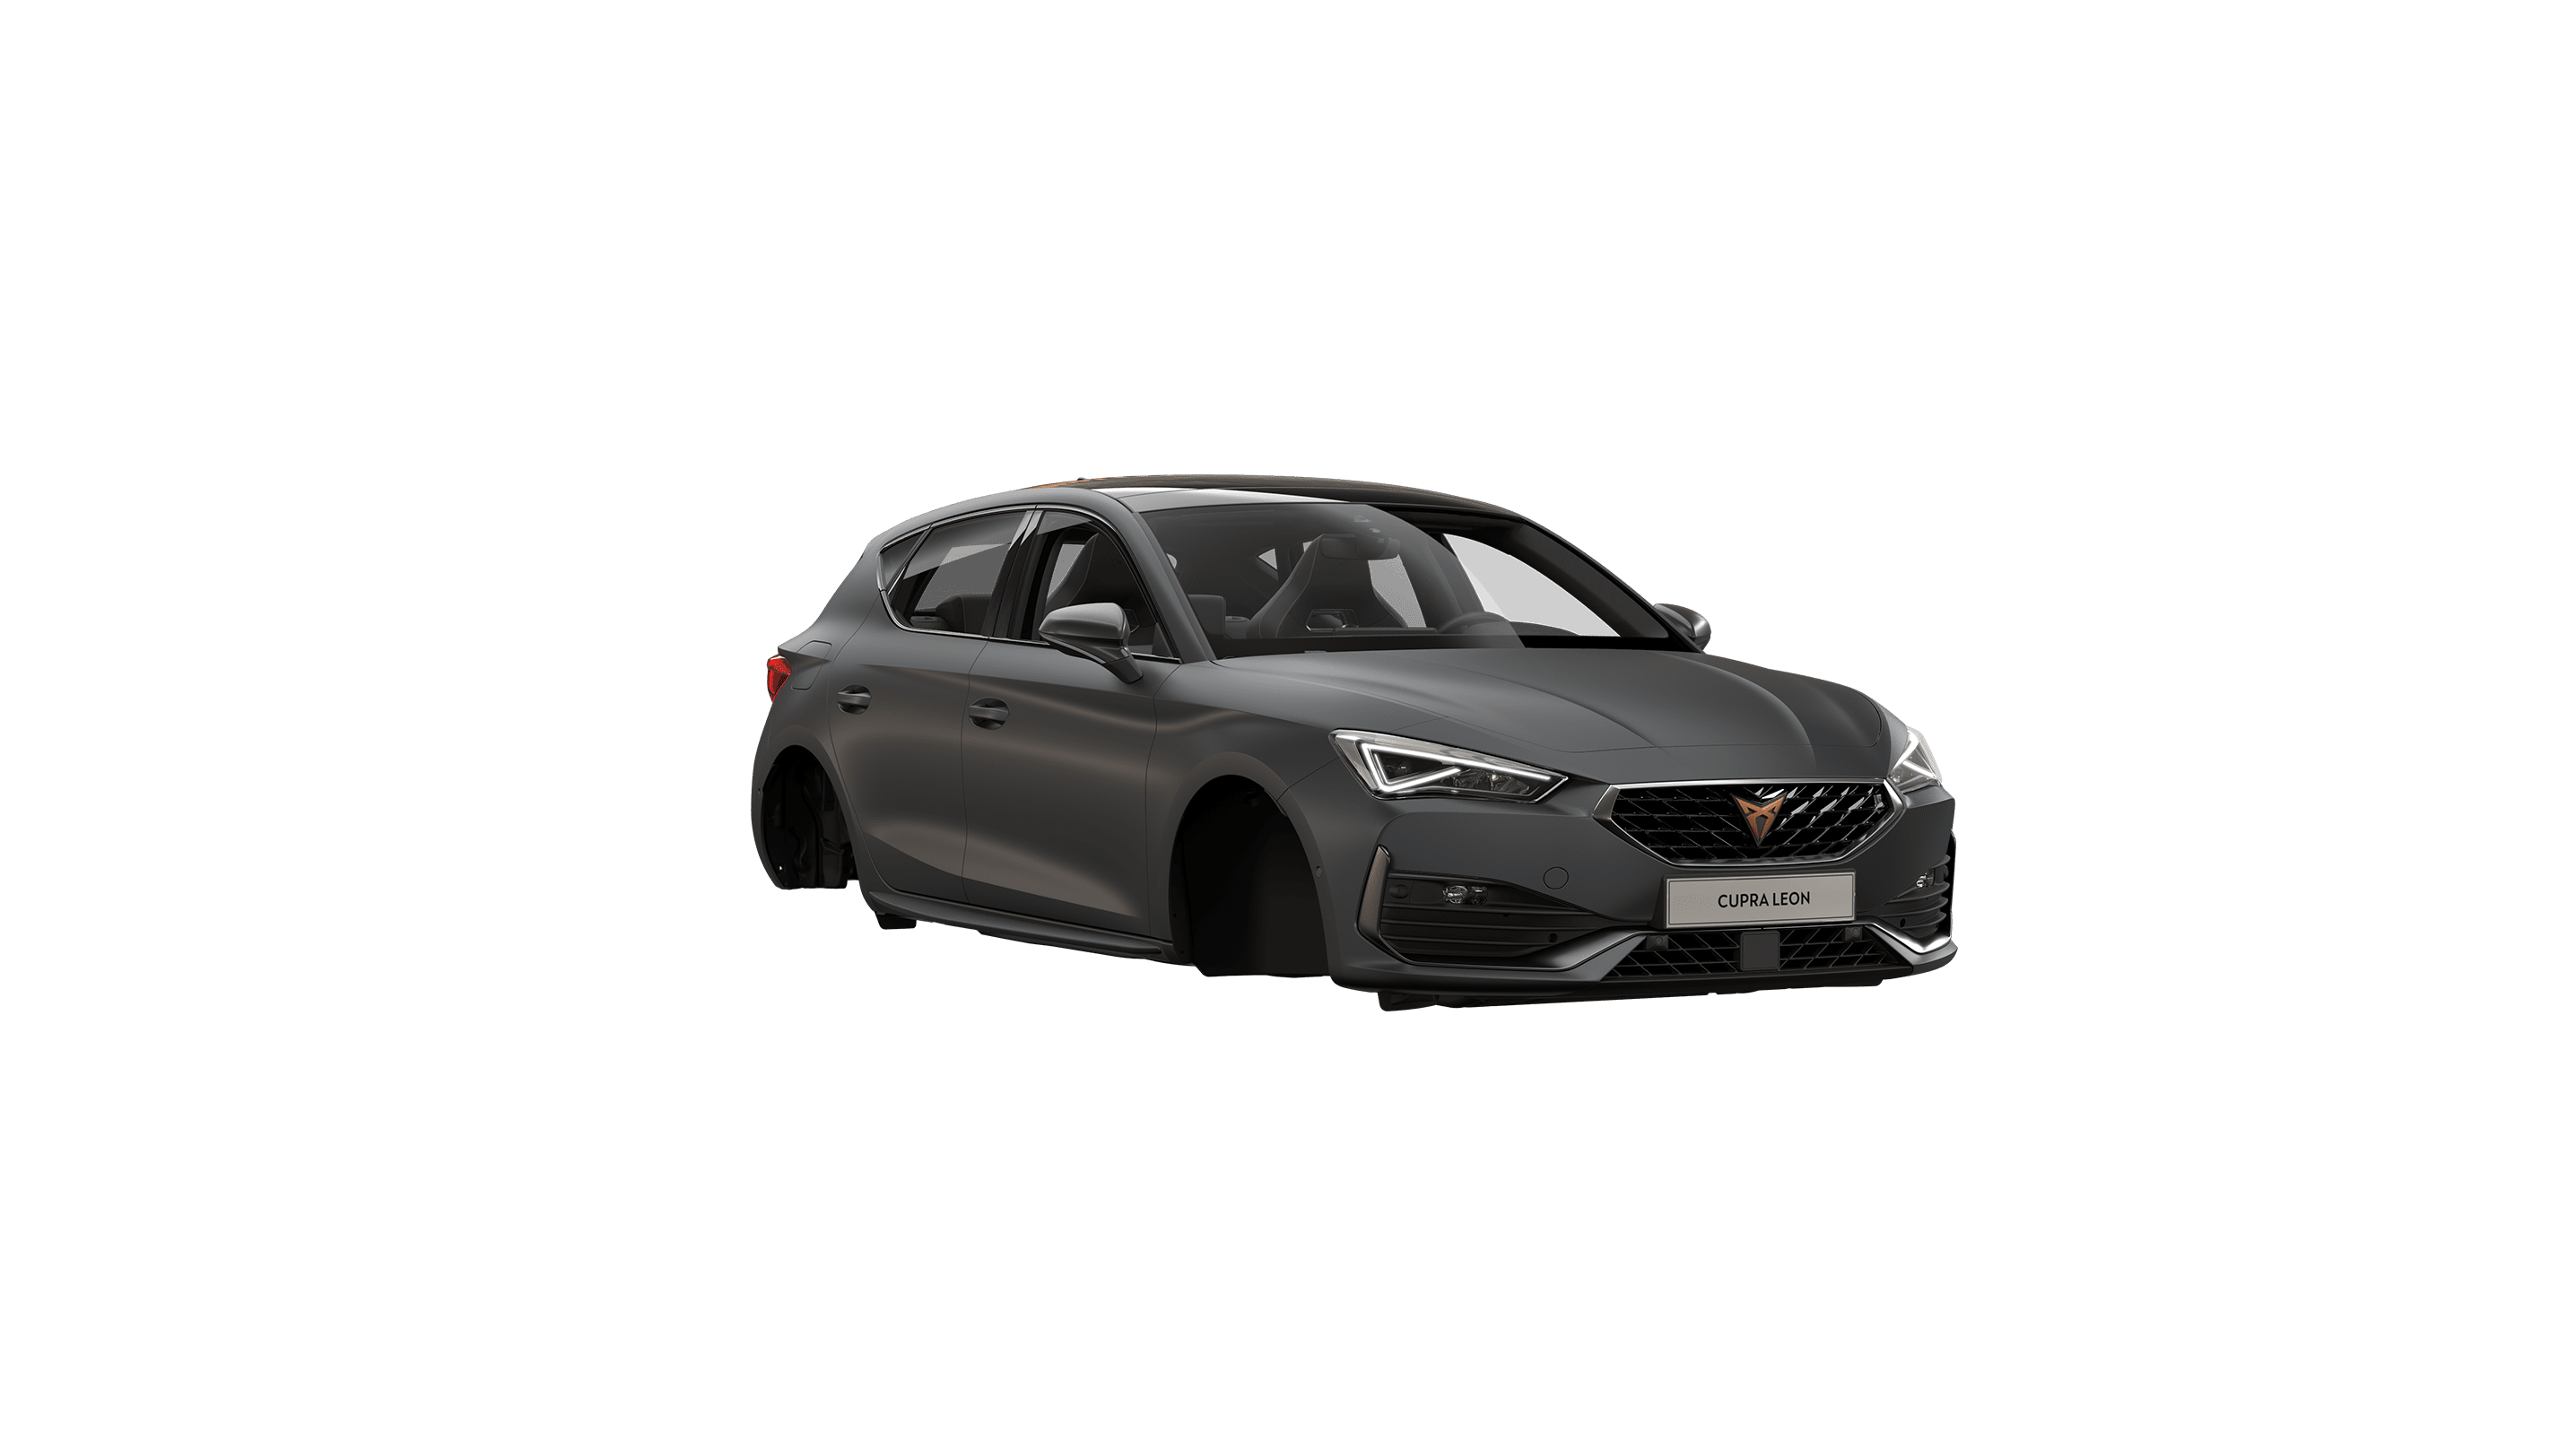 new CUPRA Leon ehybrid five door compact sports car available in magnetic tech matte colour